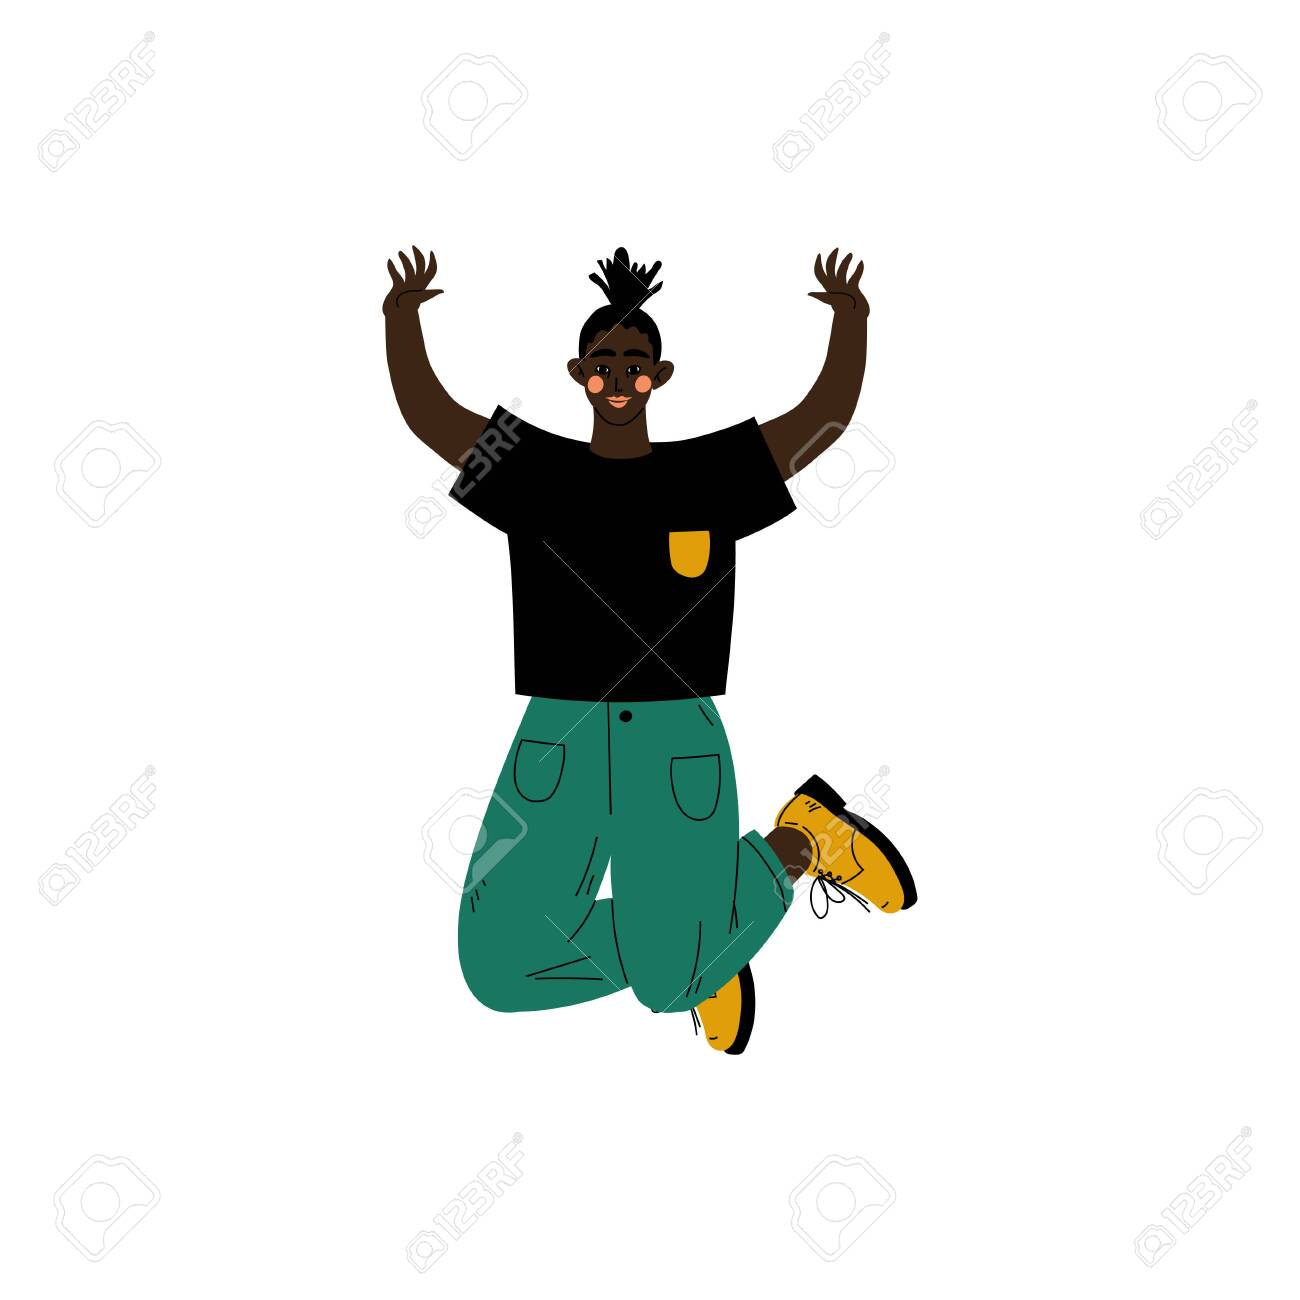 Happy African American Girl Jumping Celebrating Important Event,